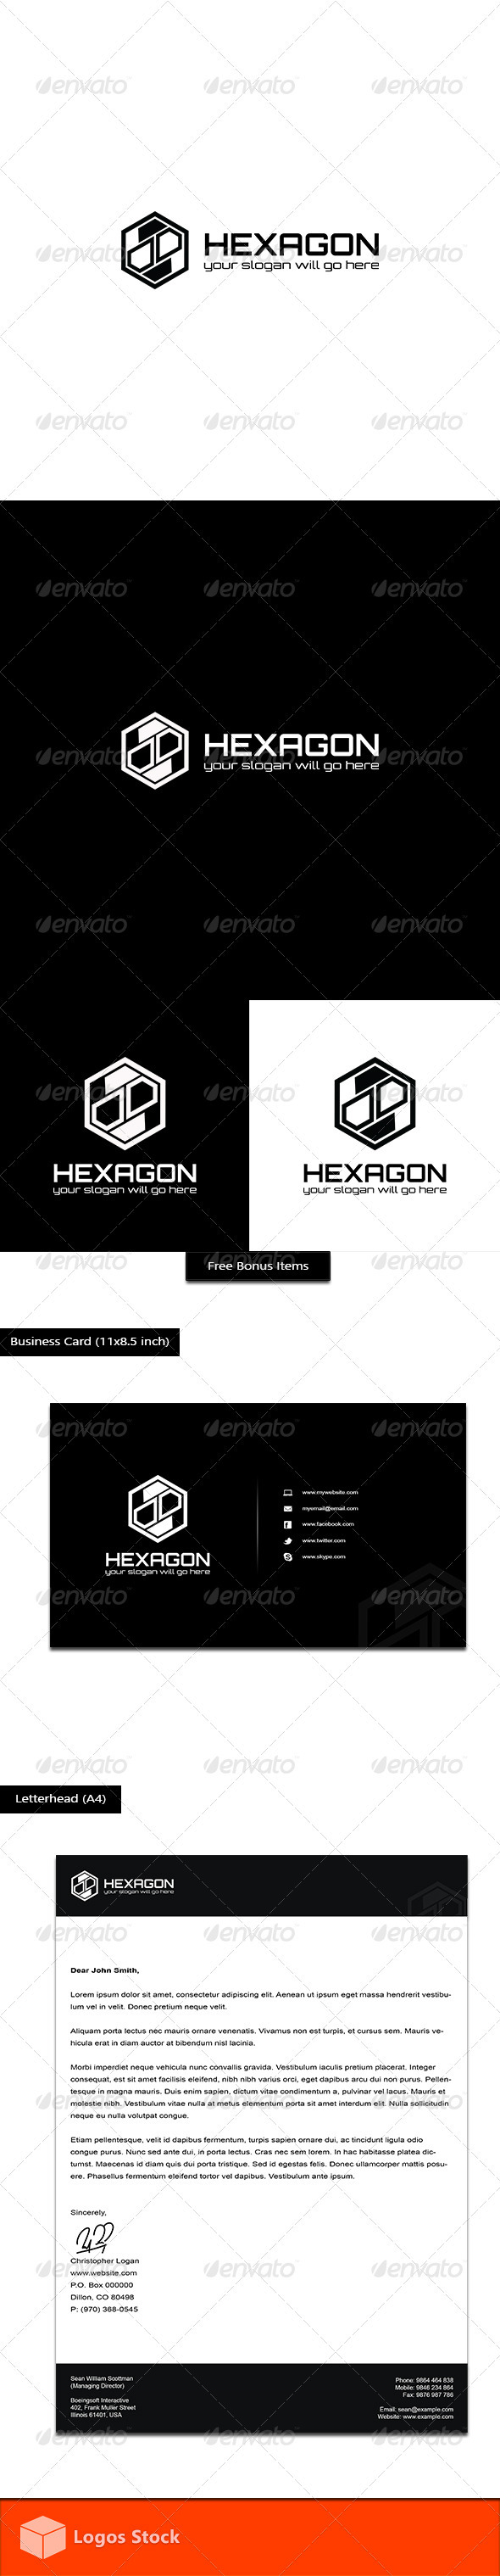 Abstract Logo - Hexagon - Vector Abstract